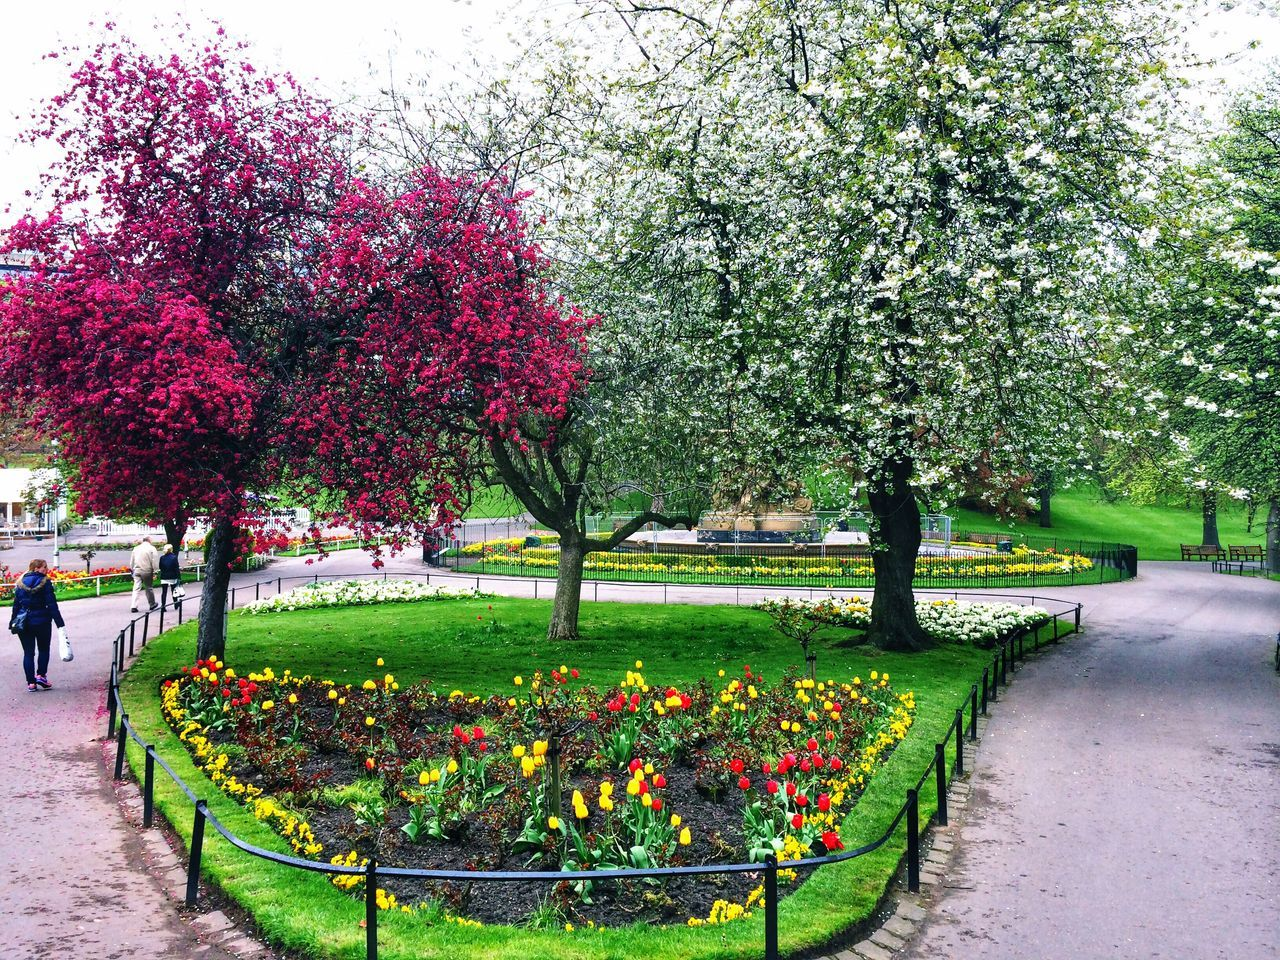 growth, flower, tree, blossom, nature, beauty in nature, springtime, botany, park - man made space, freshness, plant, fragility, green color, outdoors, day, no people